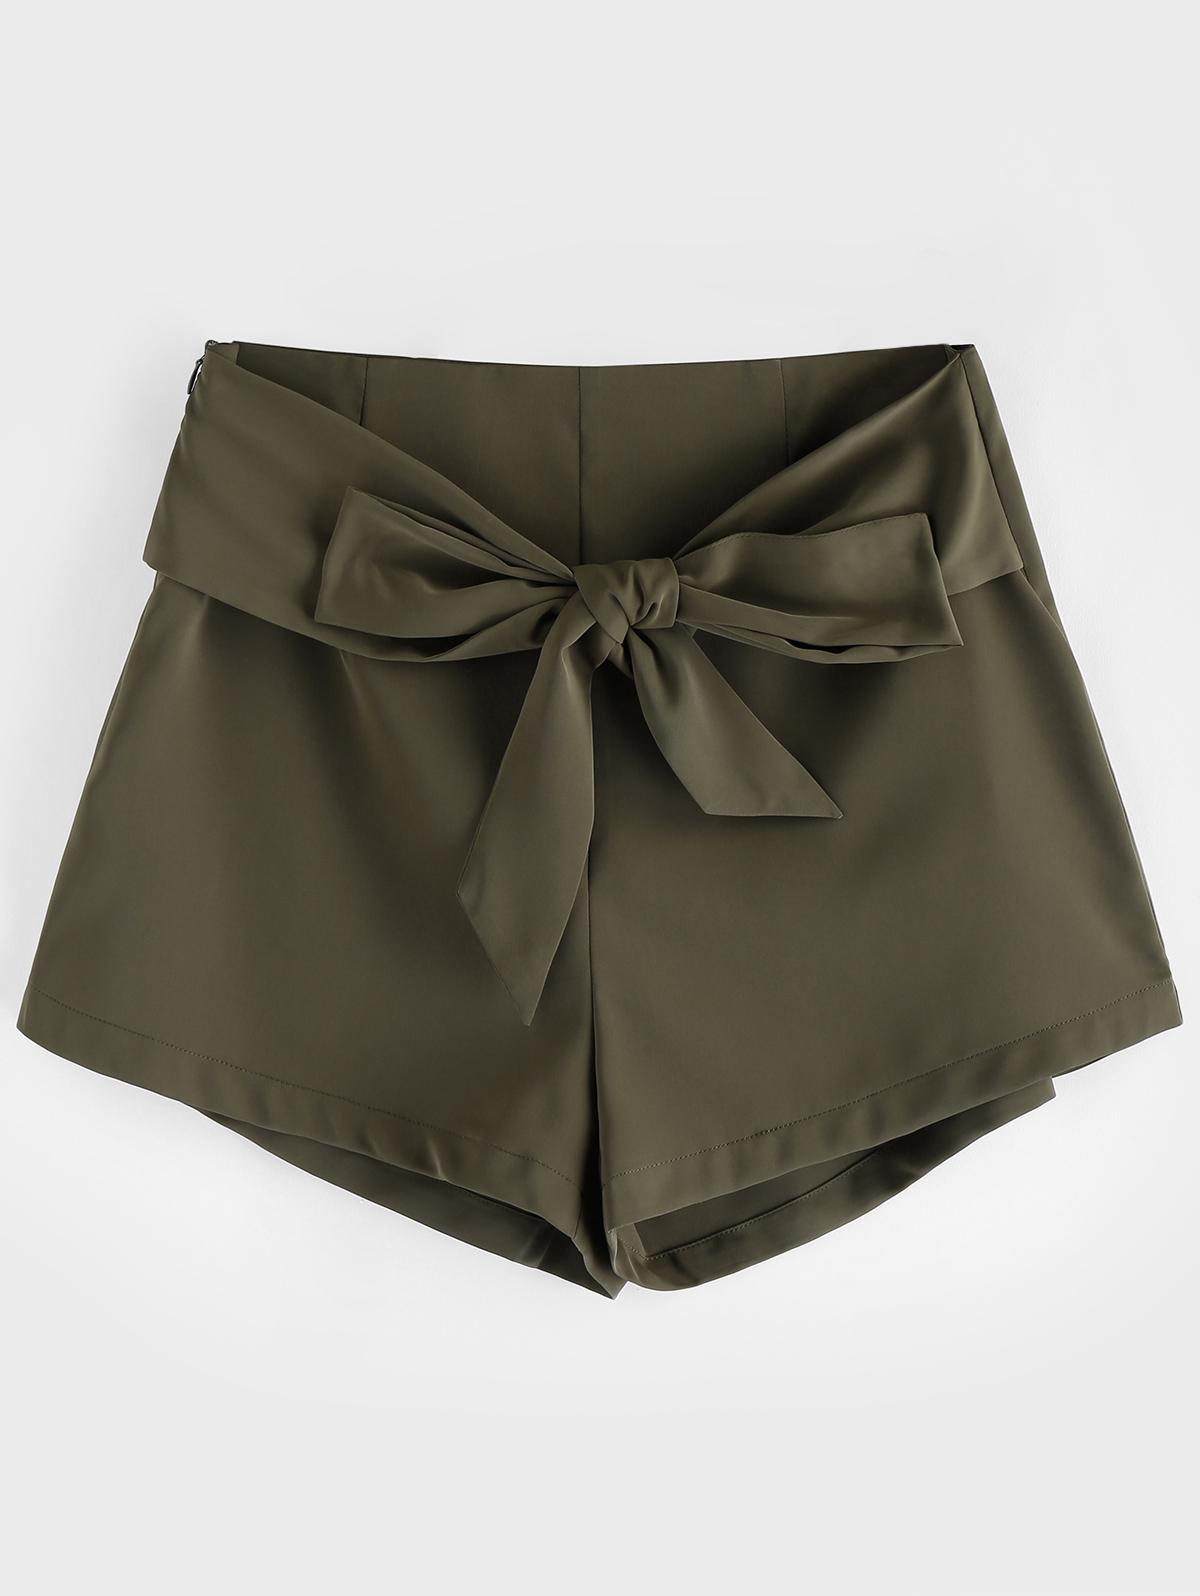 ZAFUL Belted High Waisted Wide Leg Shorts